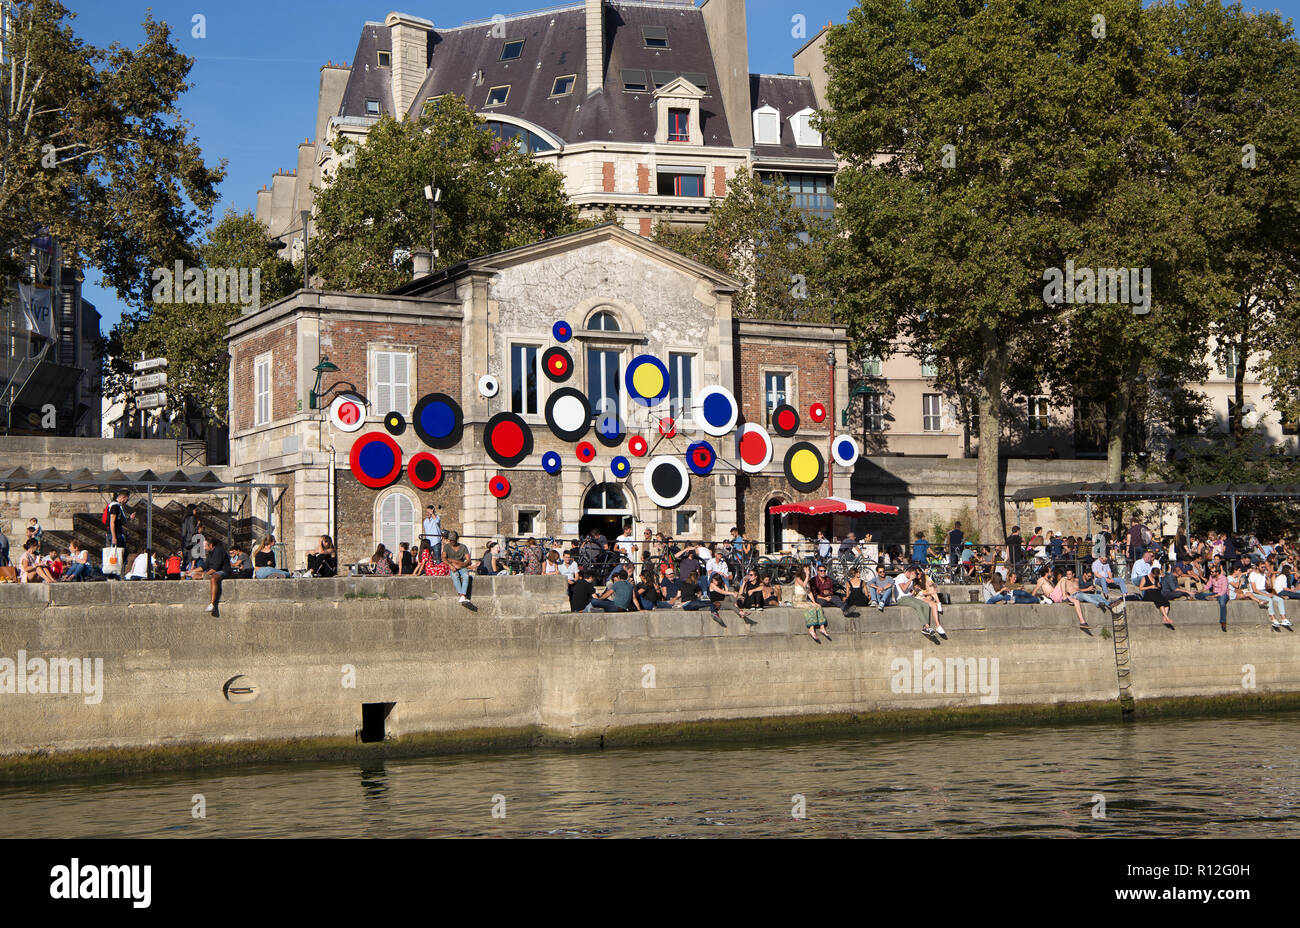 PARIS, FRANCE, SEPTEMBER 8, 2018 - People sit along the shores of the river Seine in a sunny day in Paris, France Stock Photo